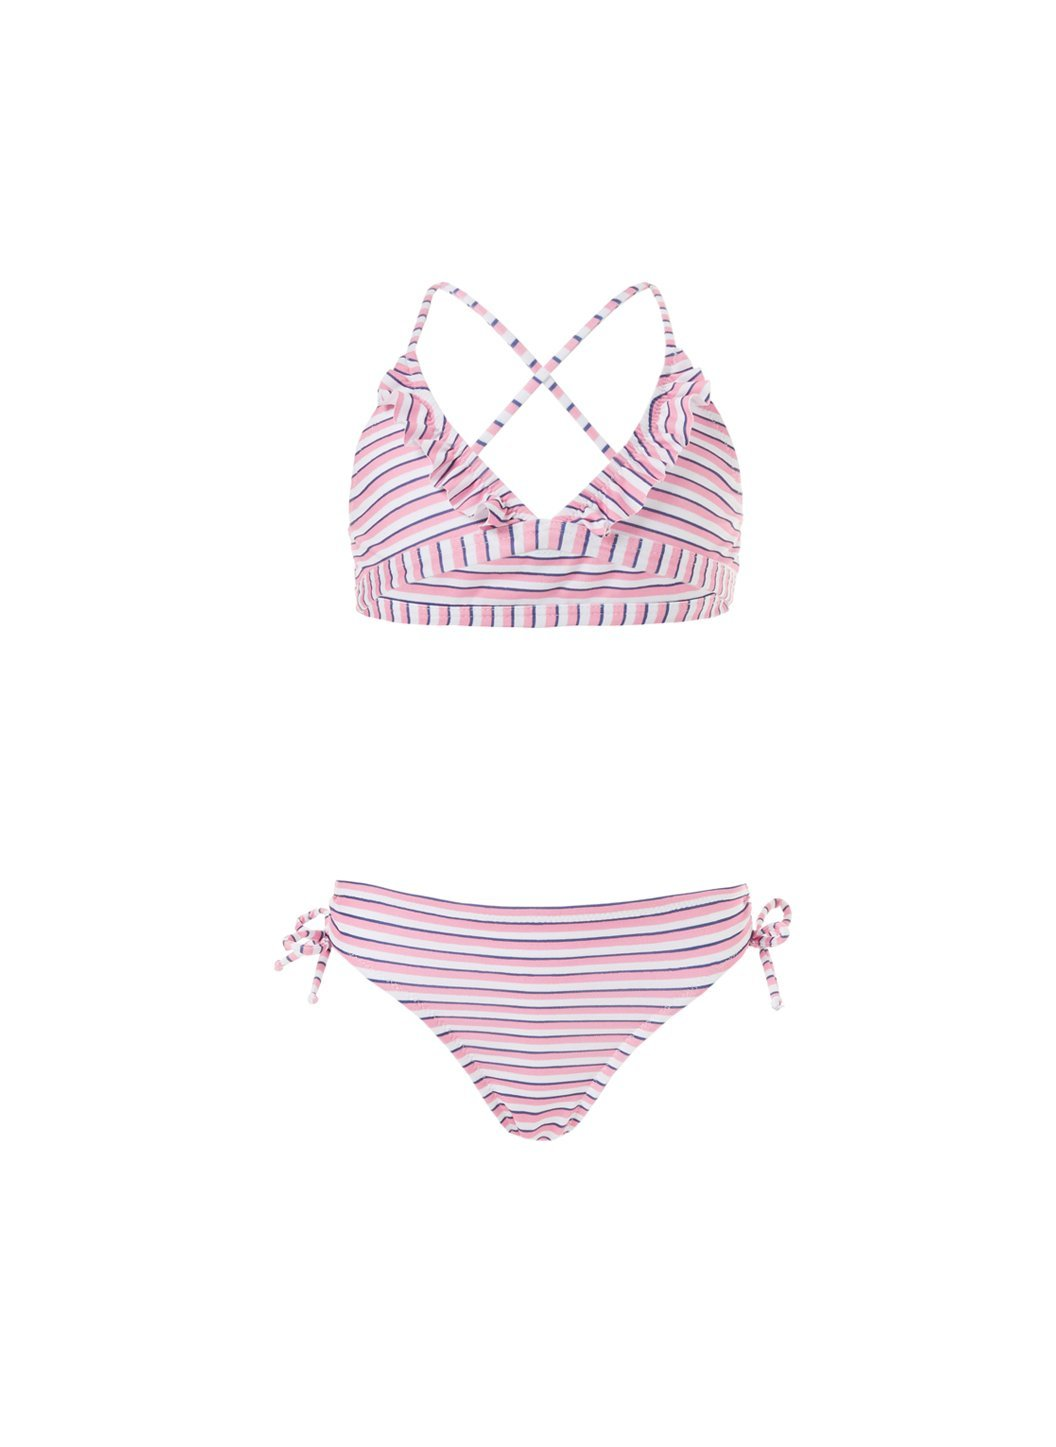 baby new york pink stripe triangle bikini 2019